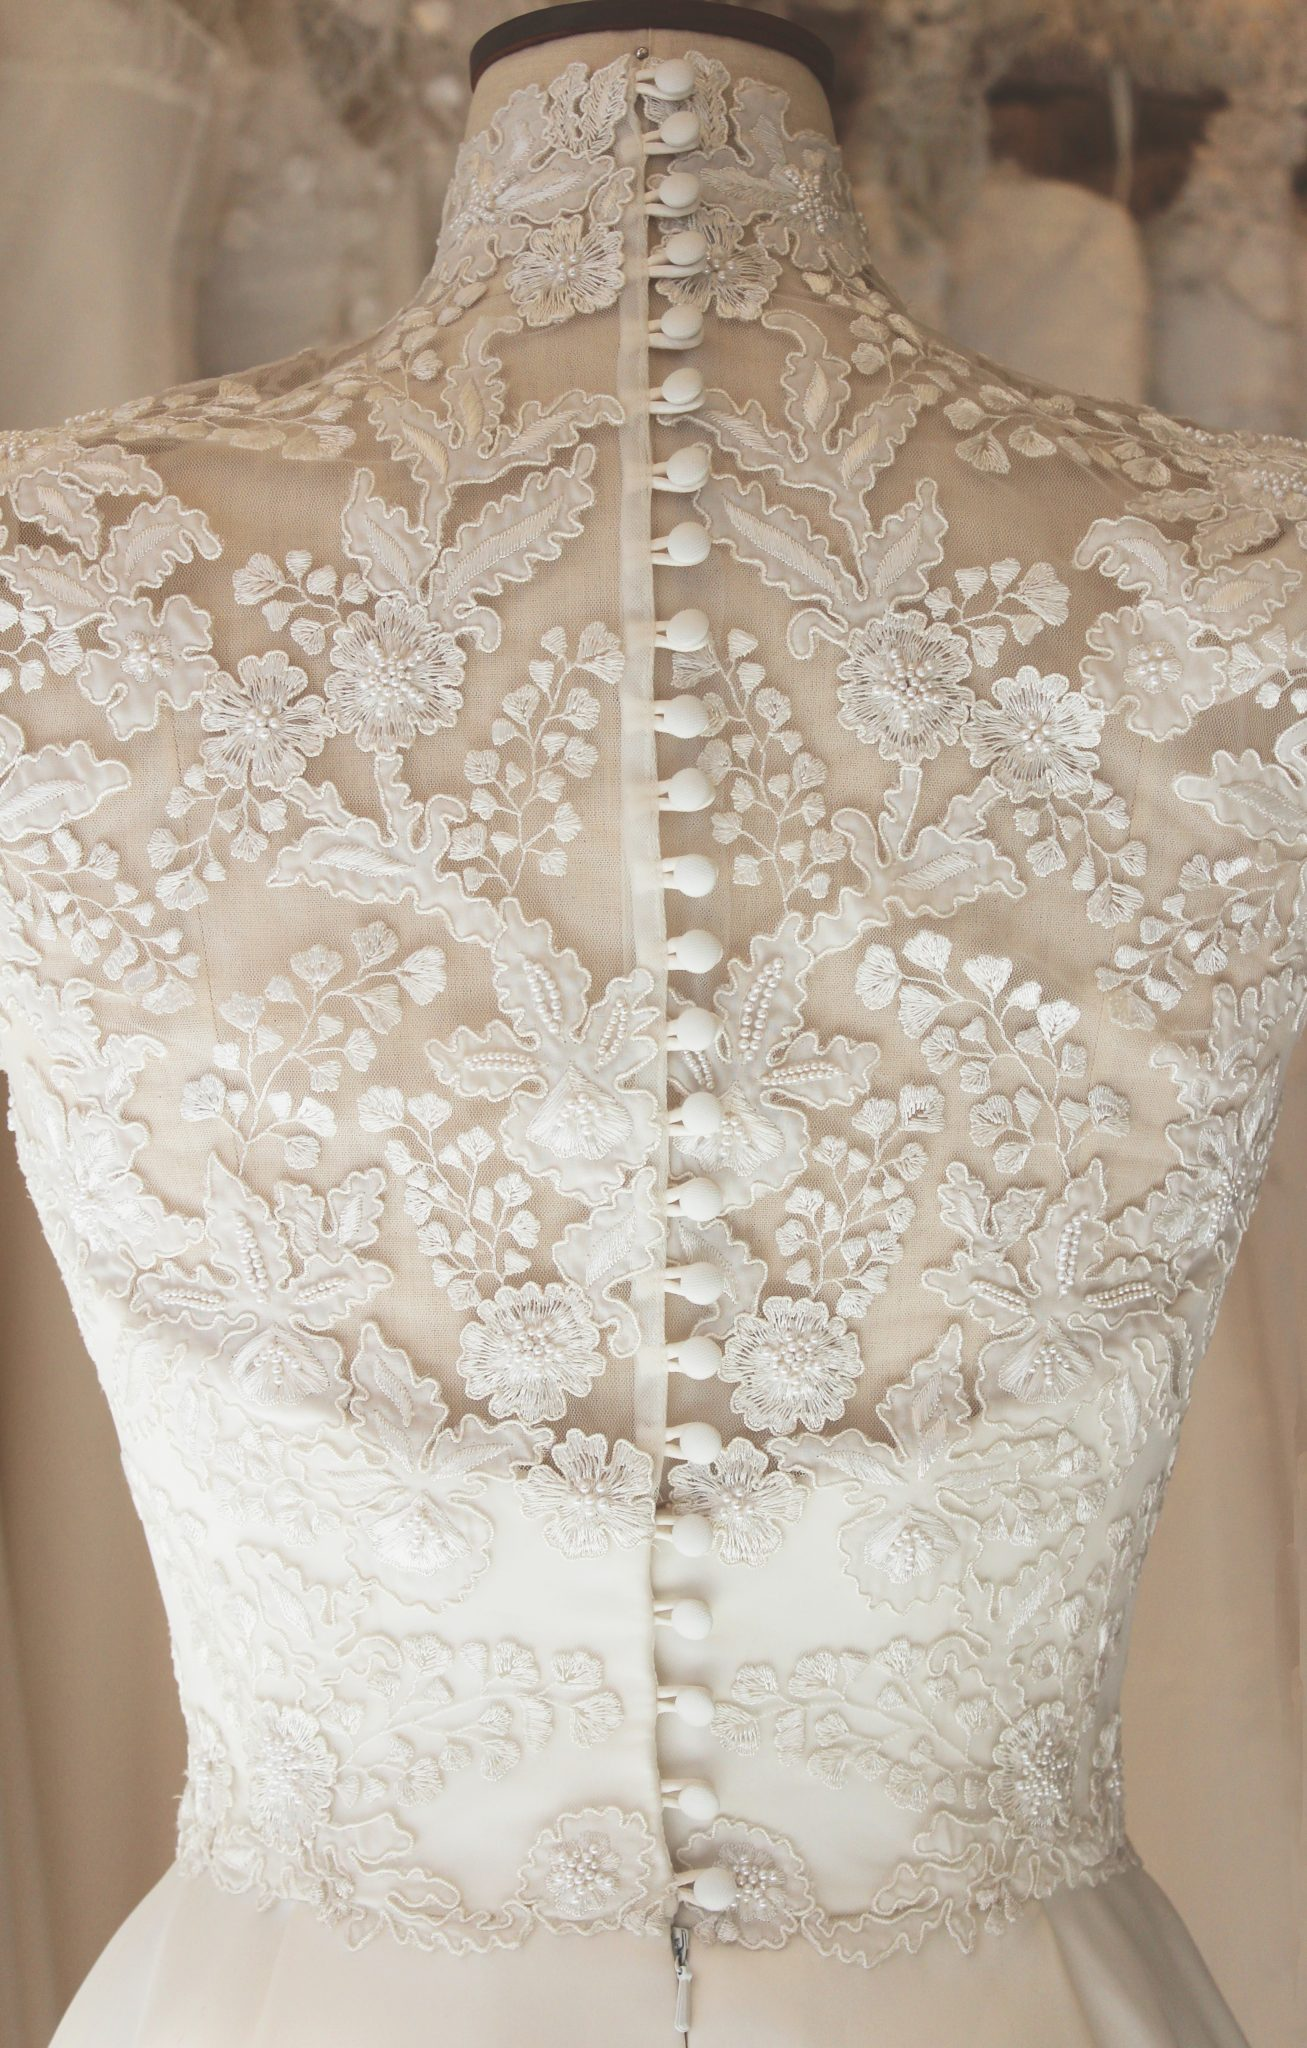 Phillipa Lepley Embroidered Wedding Dress with High Collar - Full Back View